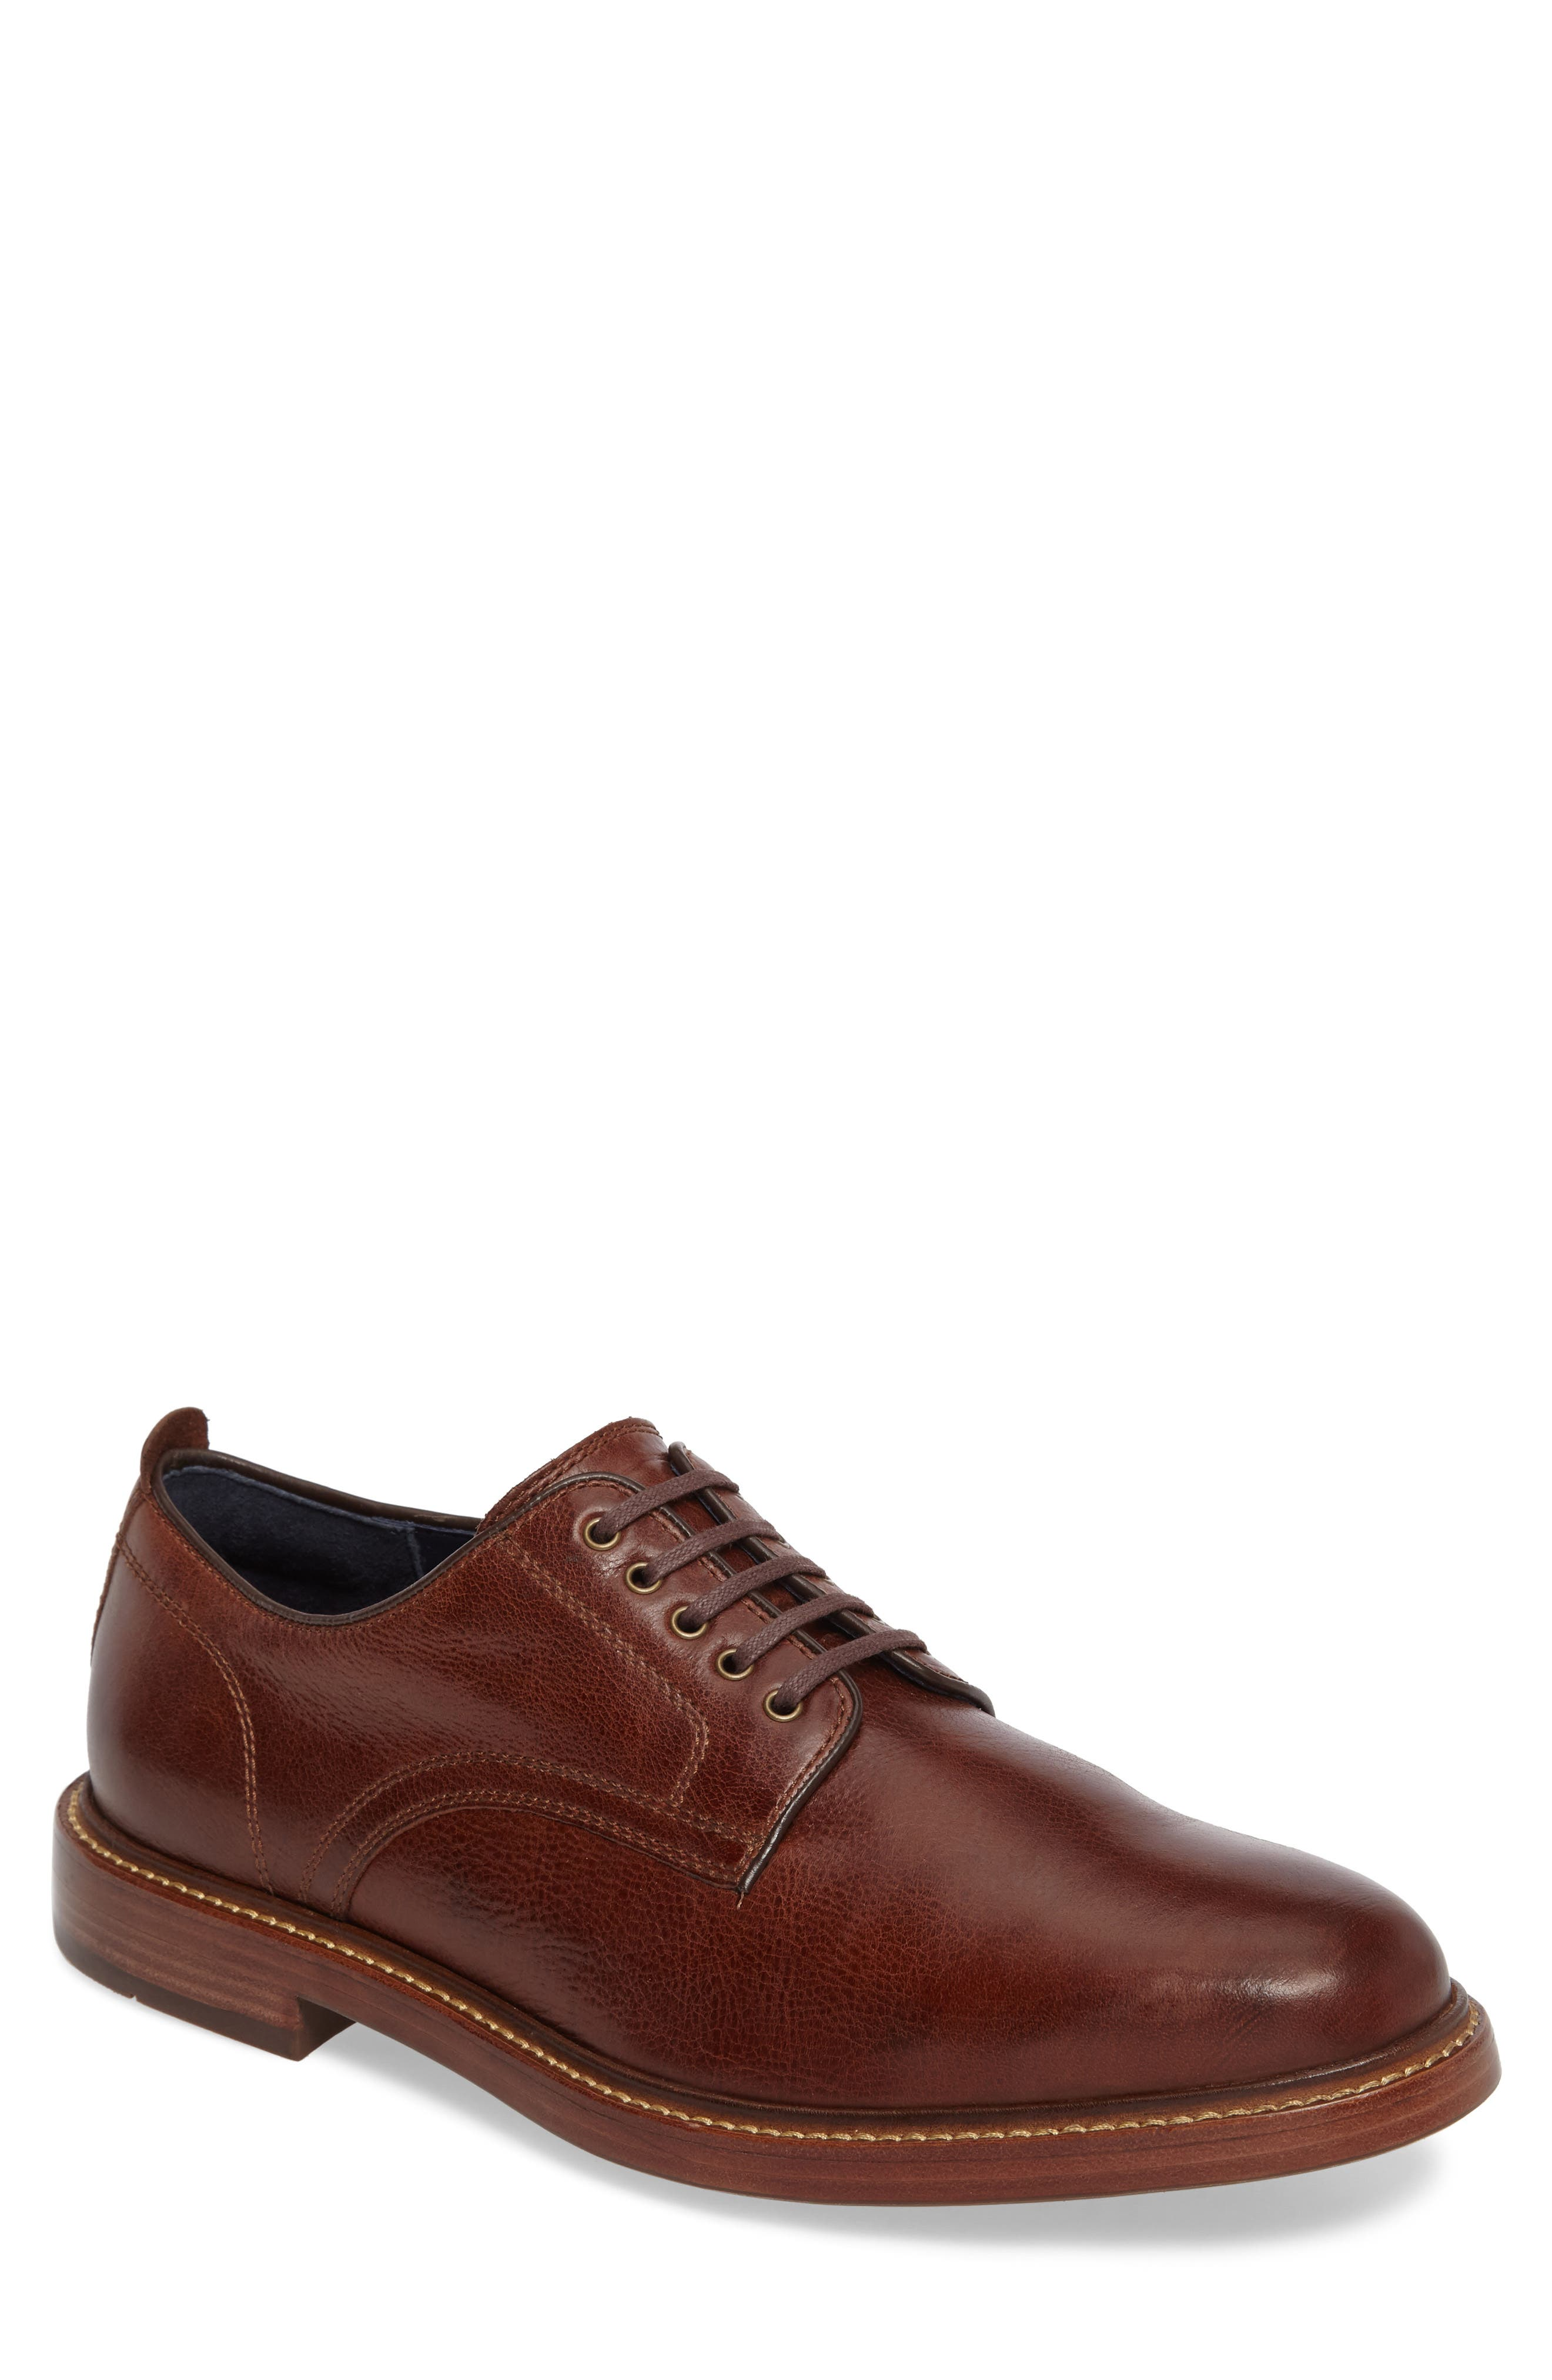 Tyler Grand Plain-Toe Derby,                             Main thumbnail 1, color,                             WOODBURY LEATHER